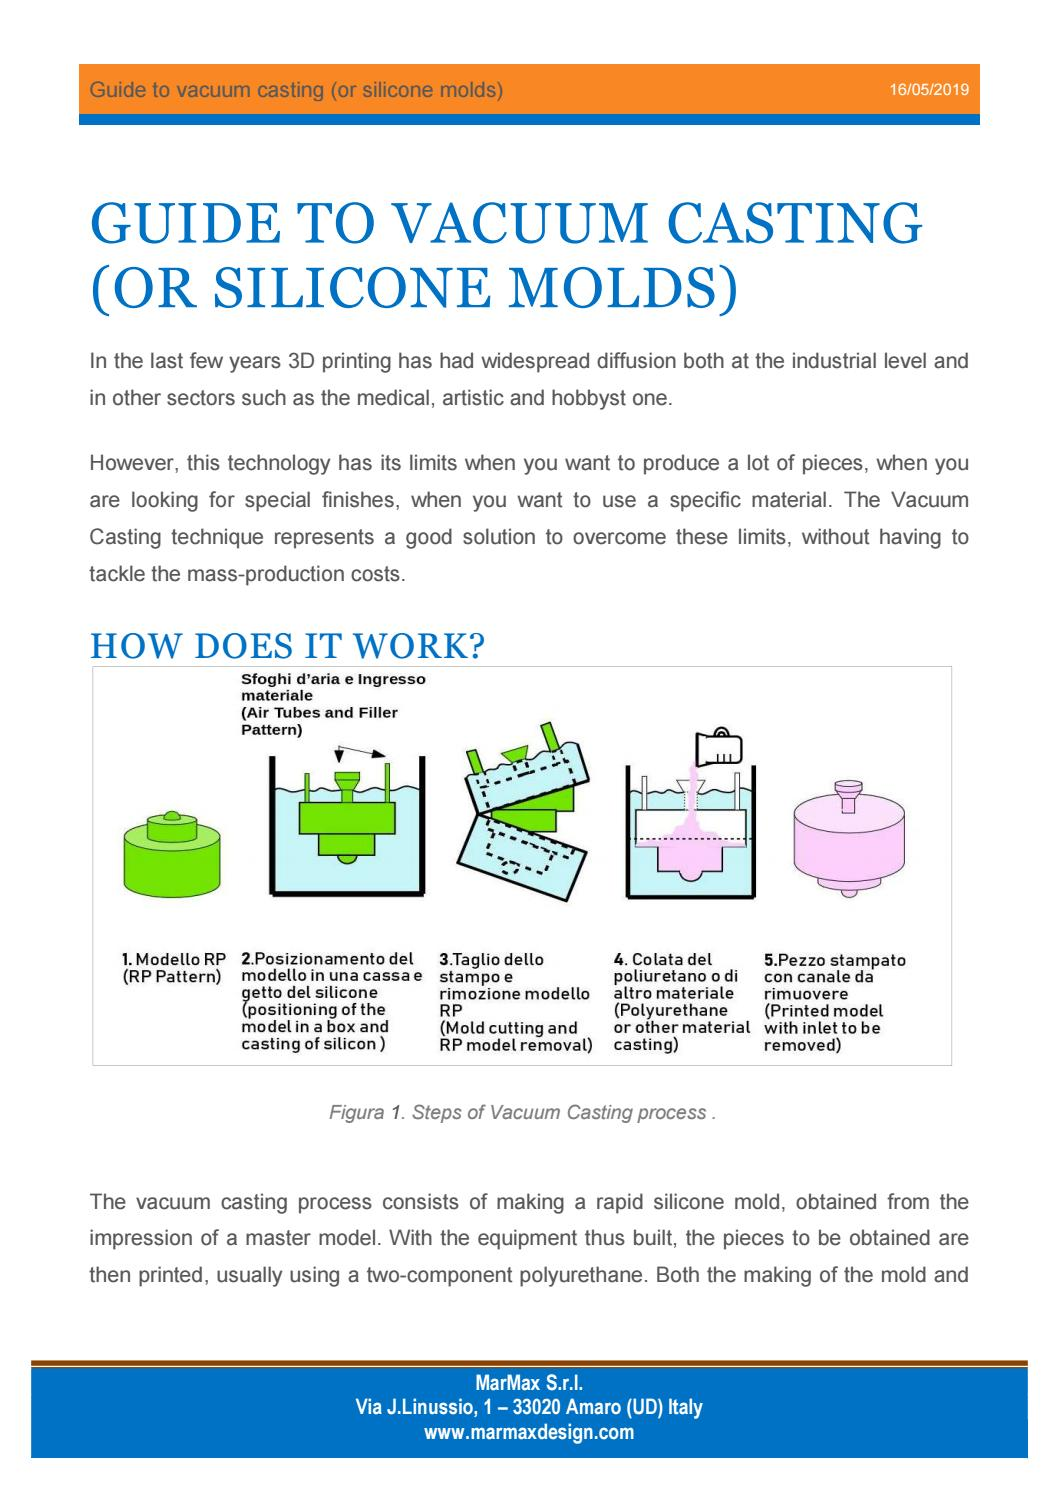 Guide to vacuum casting by marmaxdesign - issuu